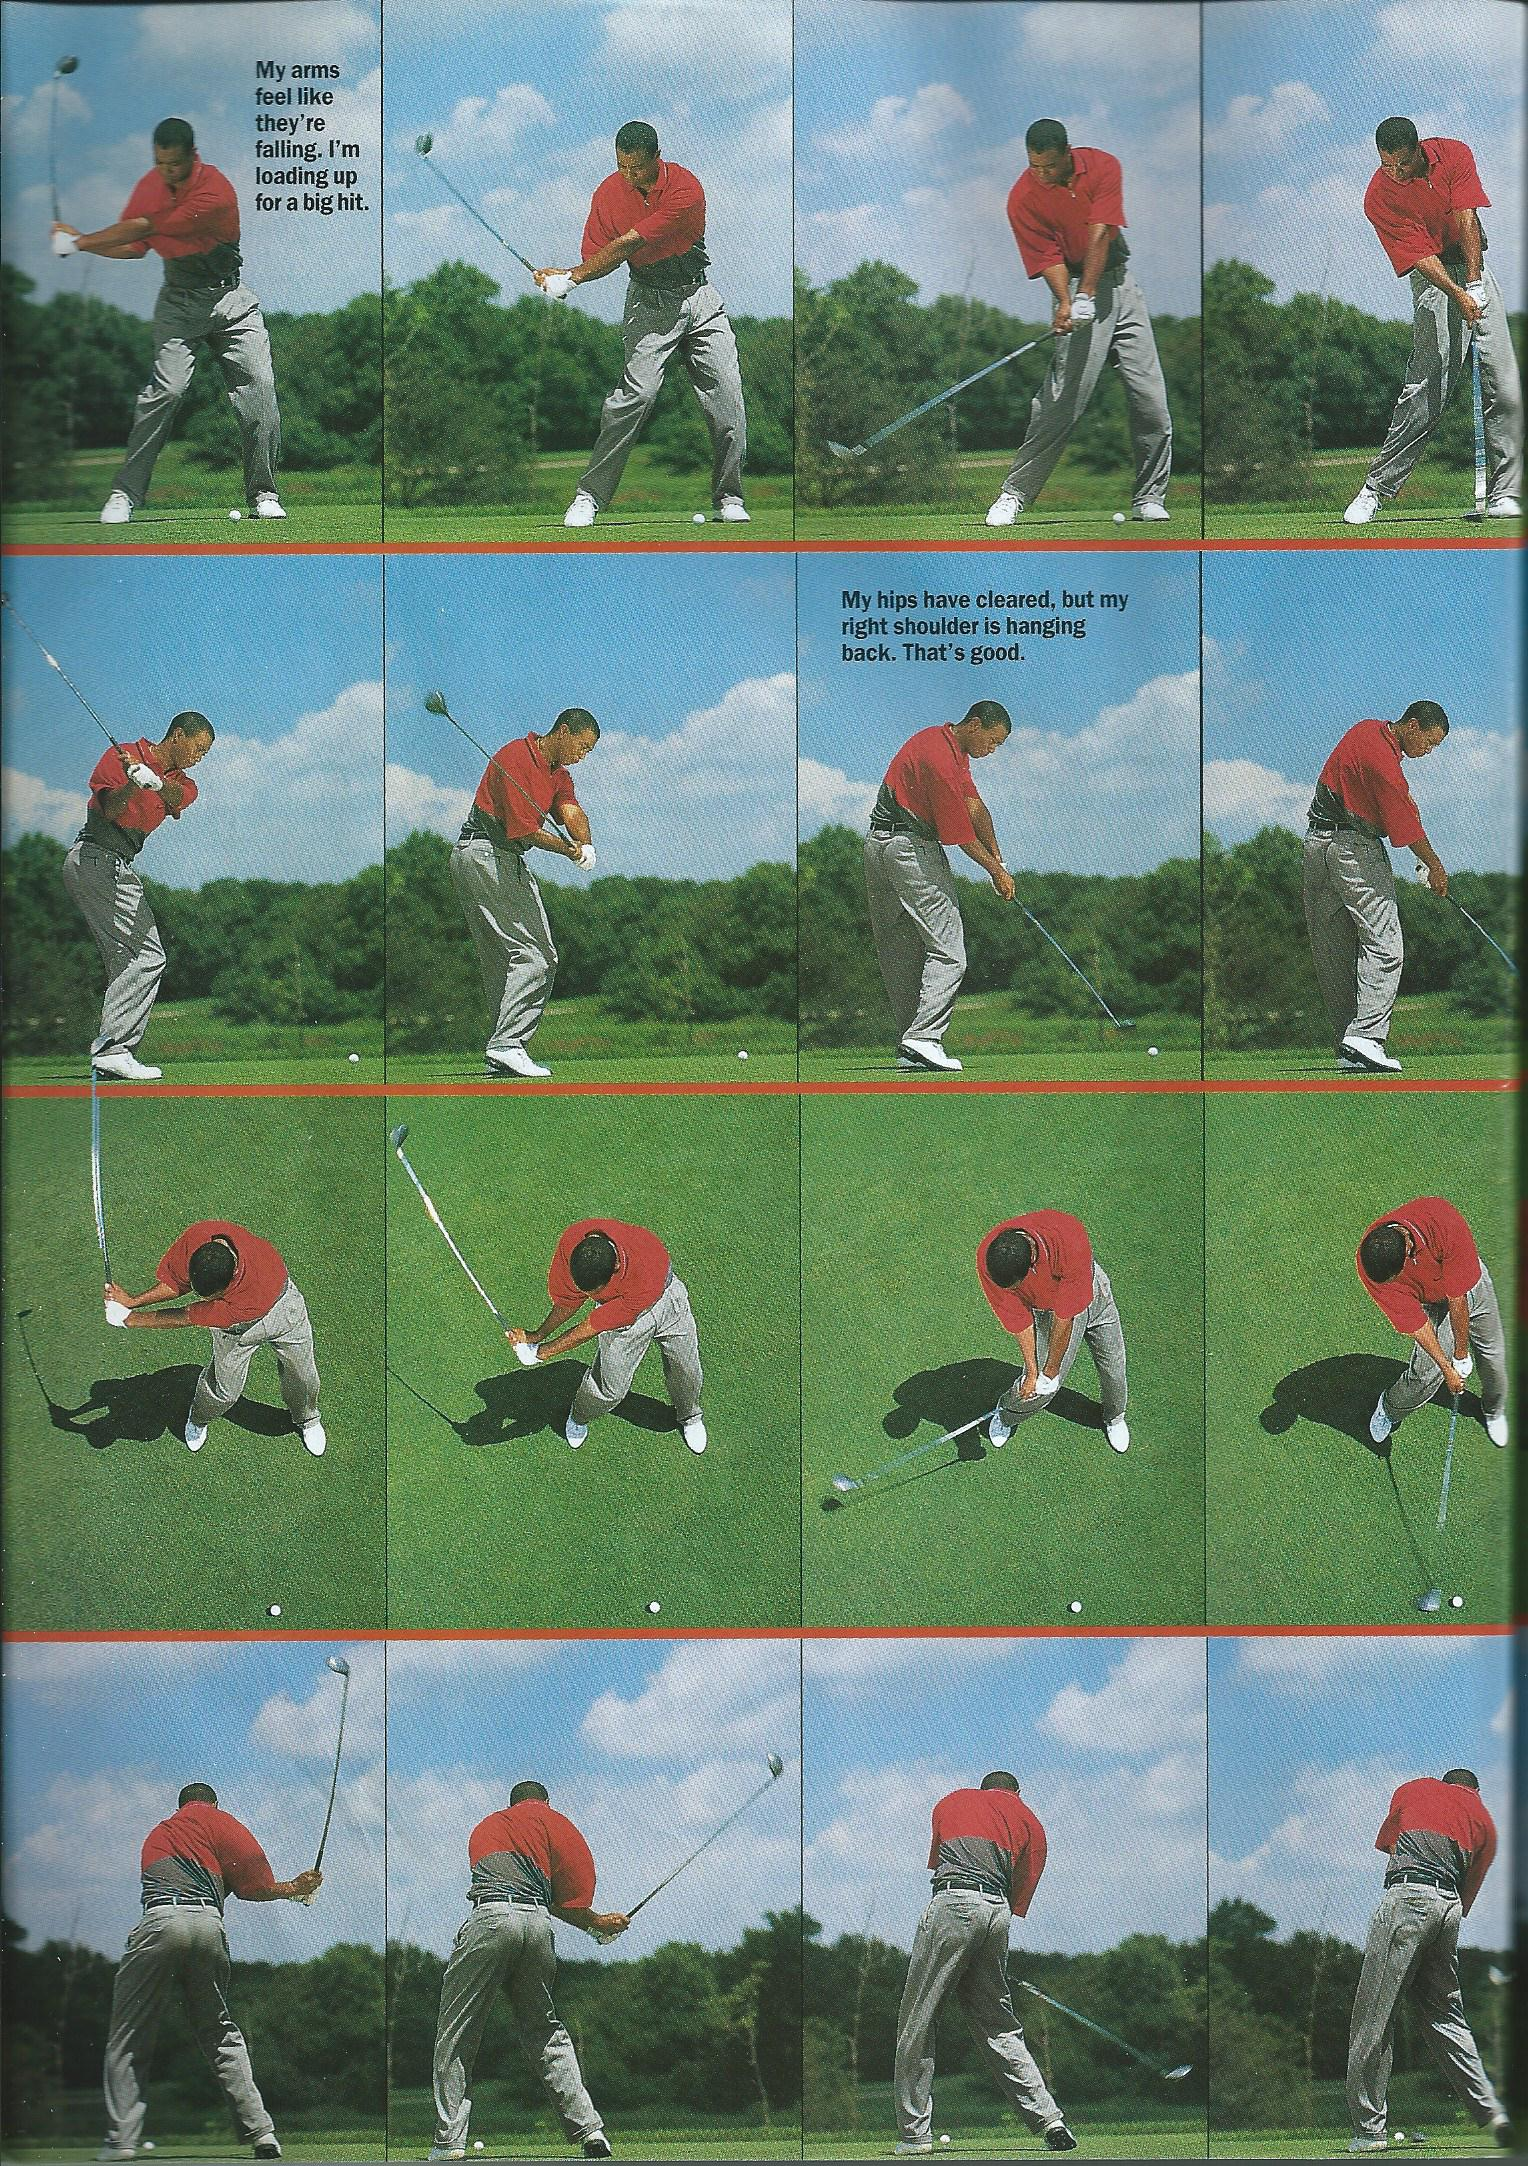 pixels  free images for your tablet devices  Tiger Woods Golf Swing    Tiger Woods Swing Sequence